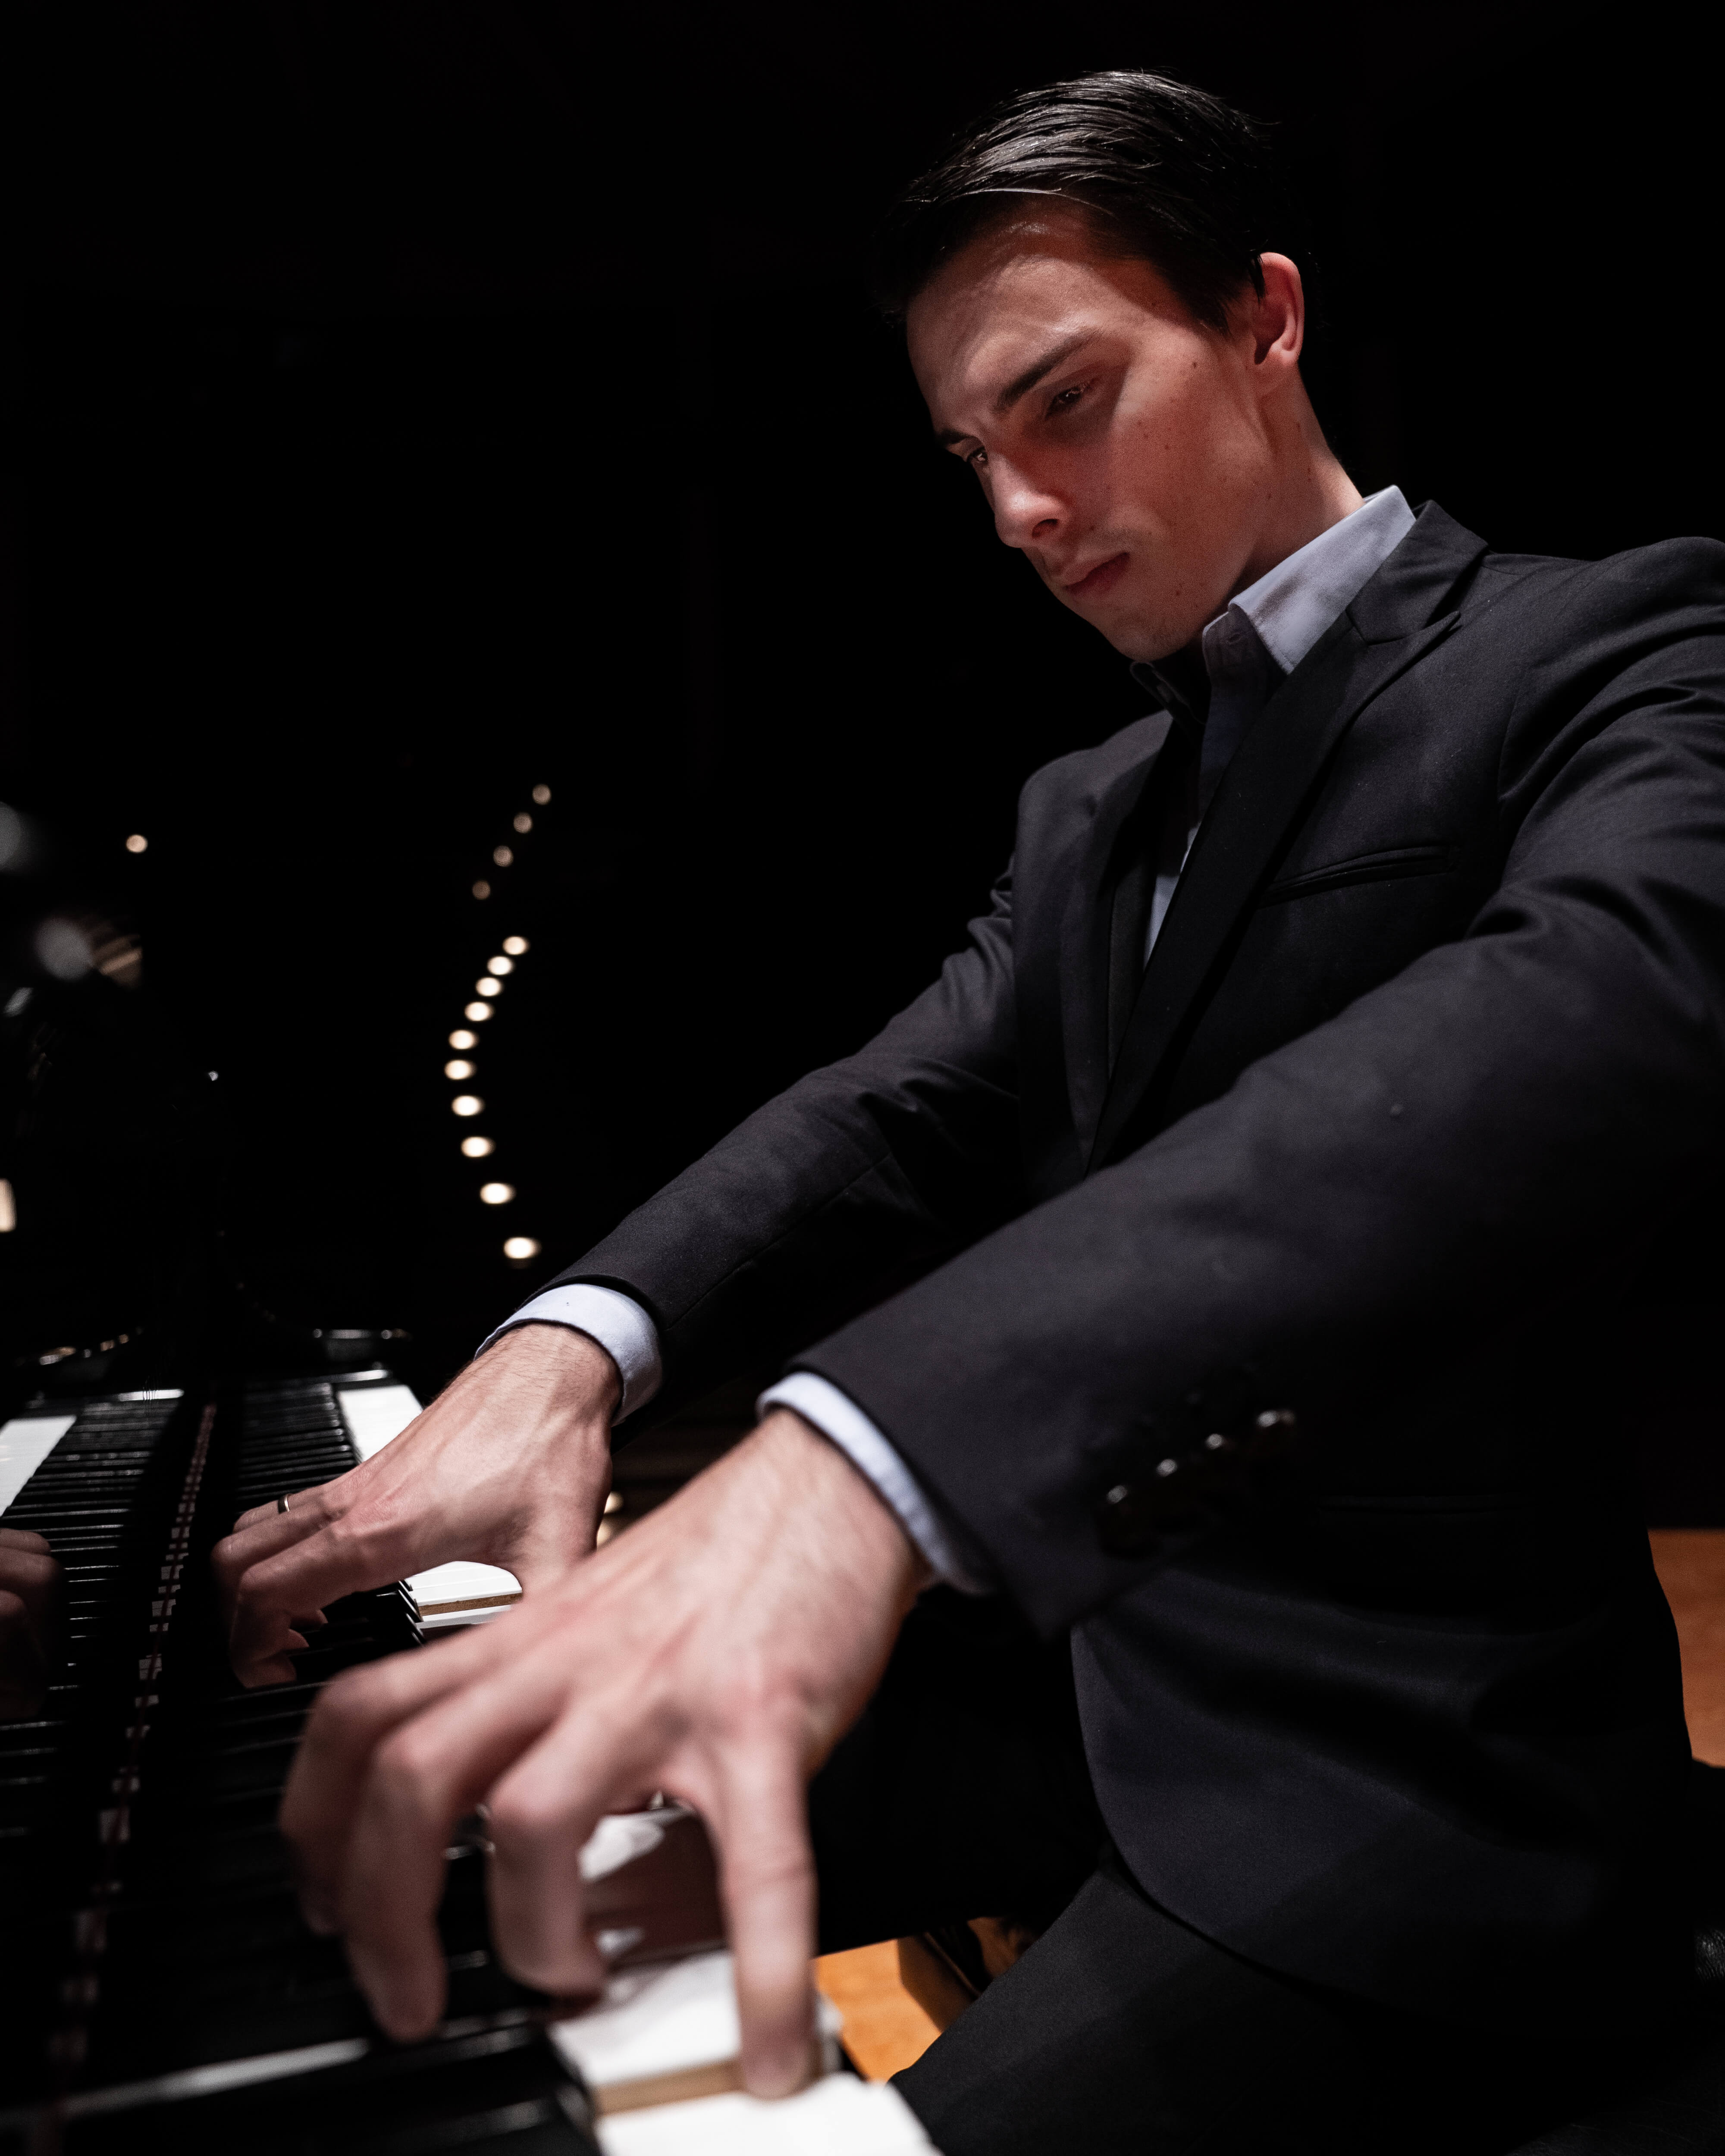 A pianist playing with curled fingers from an interesting angle.